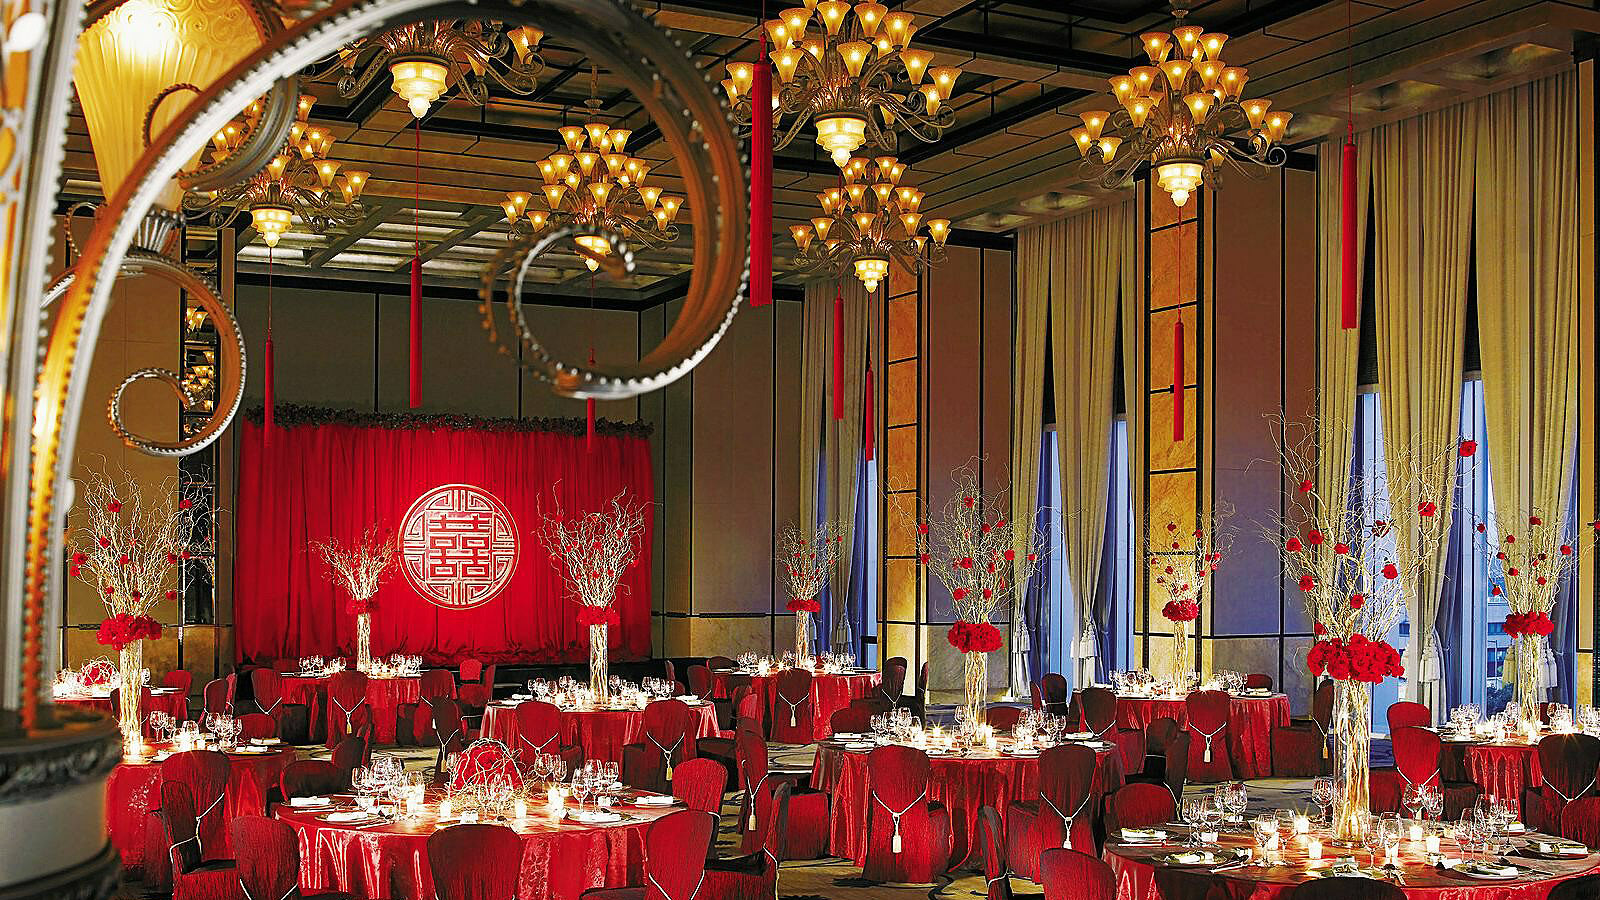 8 Foot Banquet Table Dimensions Four Seasons Hotel Hong Kong – Perfect for Corporate Events and ...